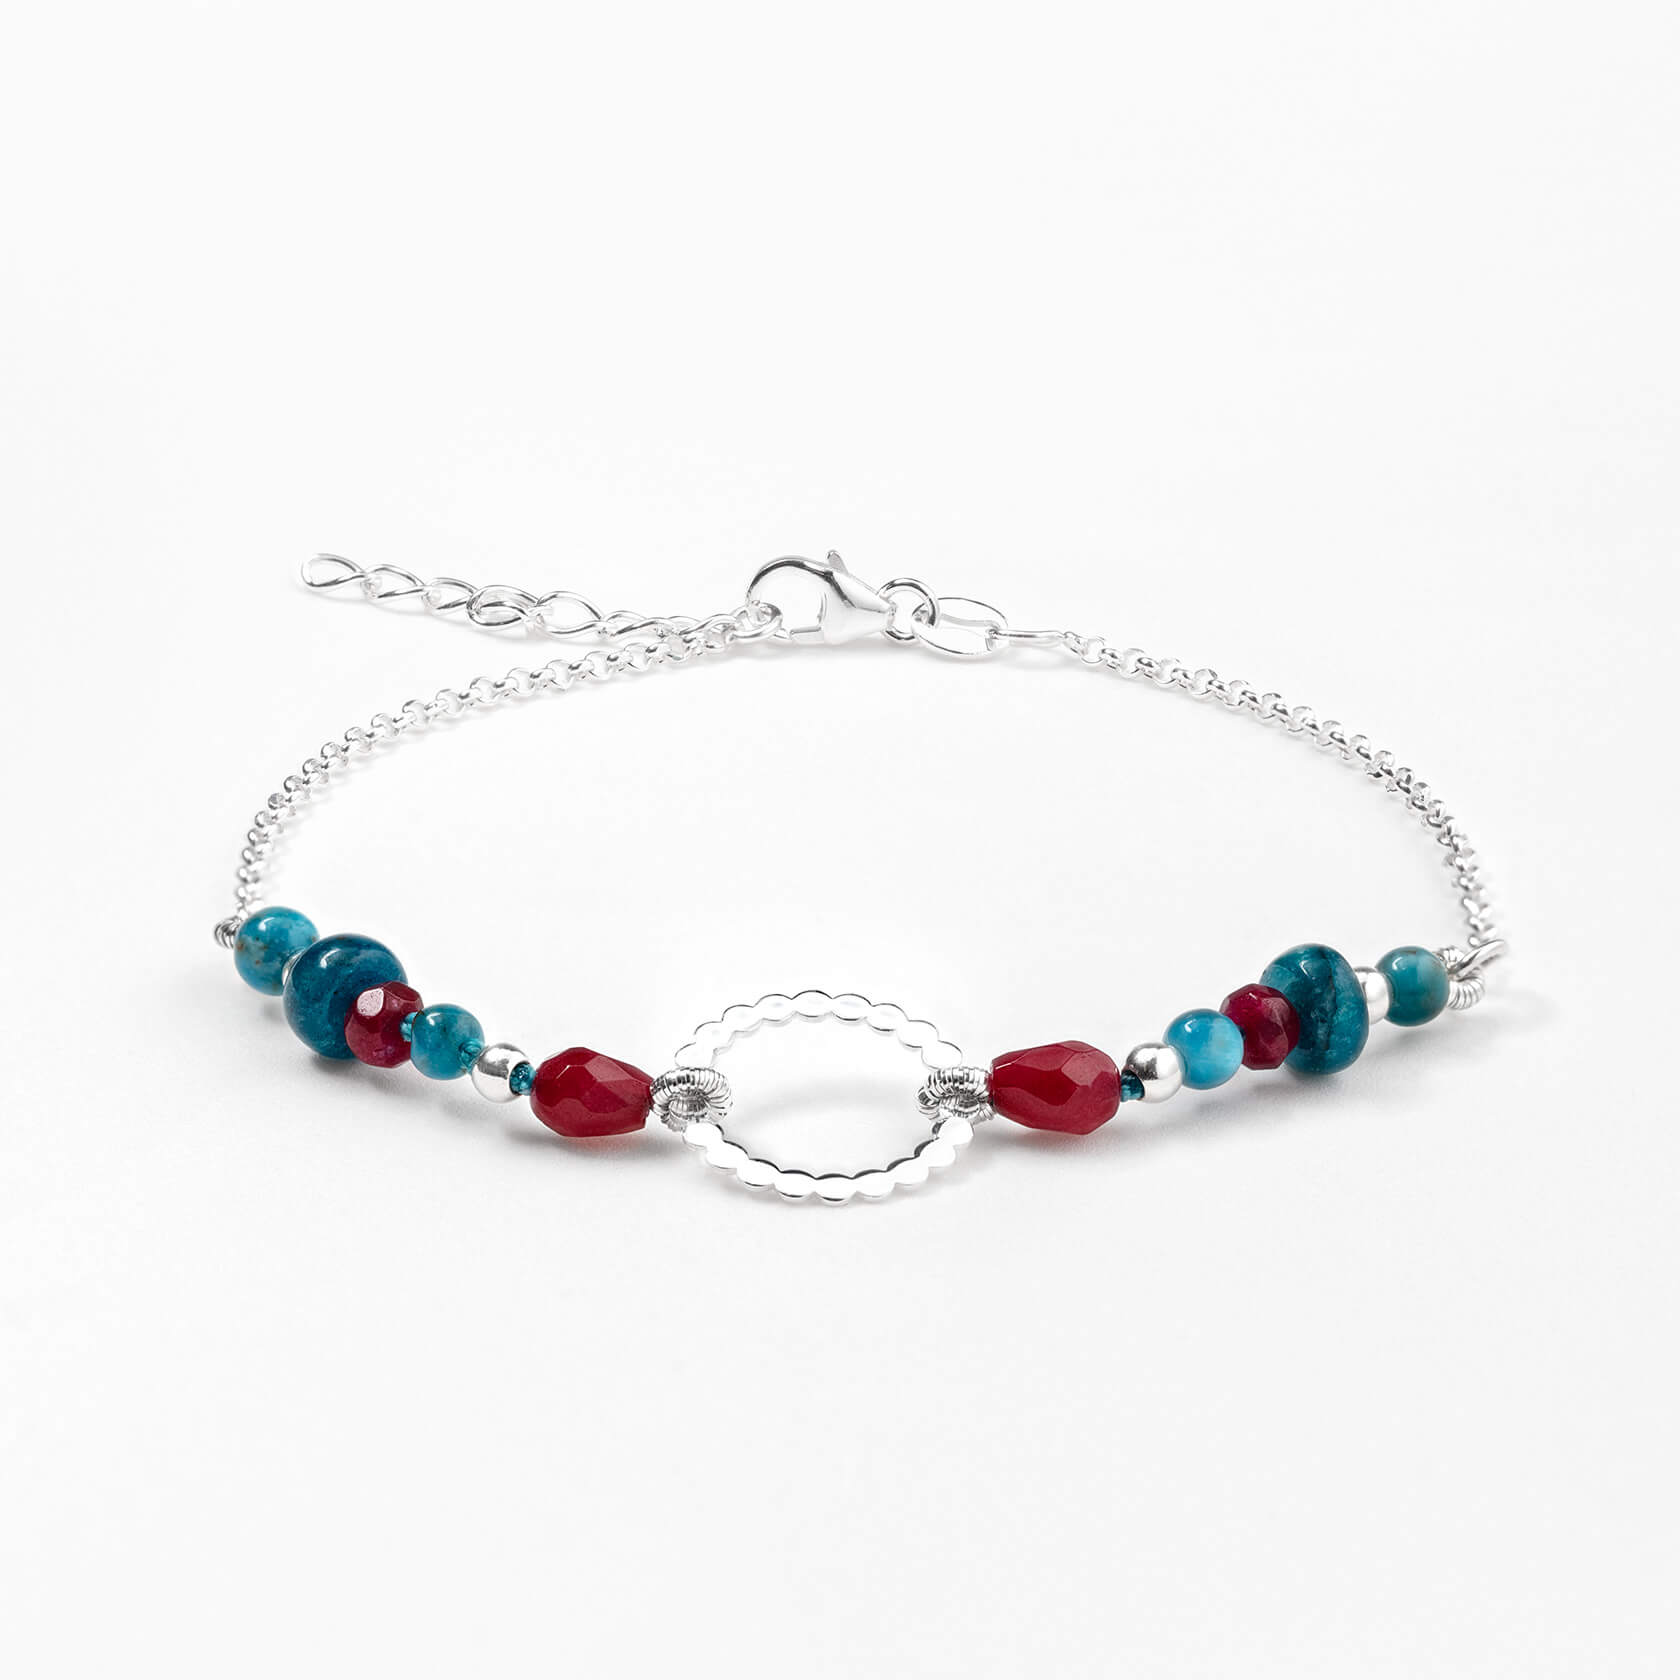 Ruby agate and blue apatite bracelet